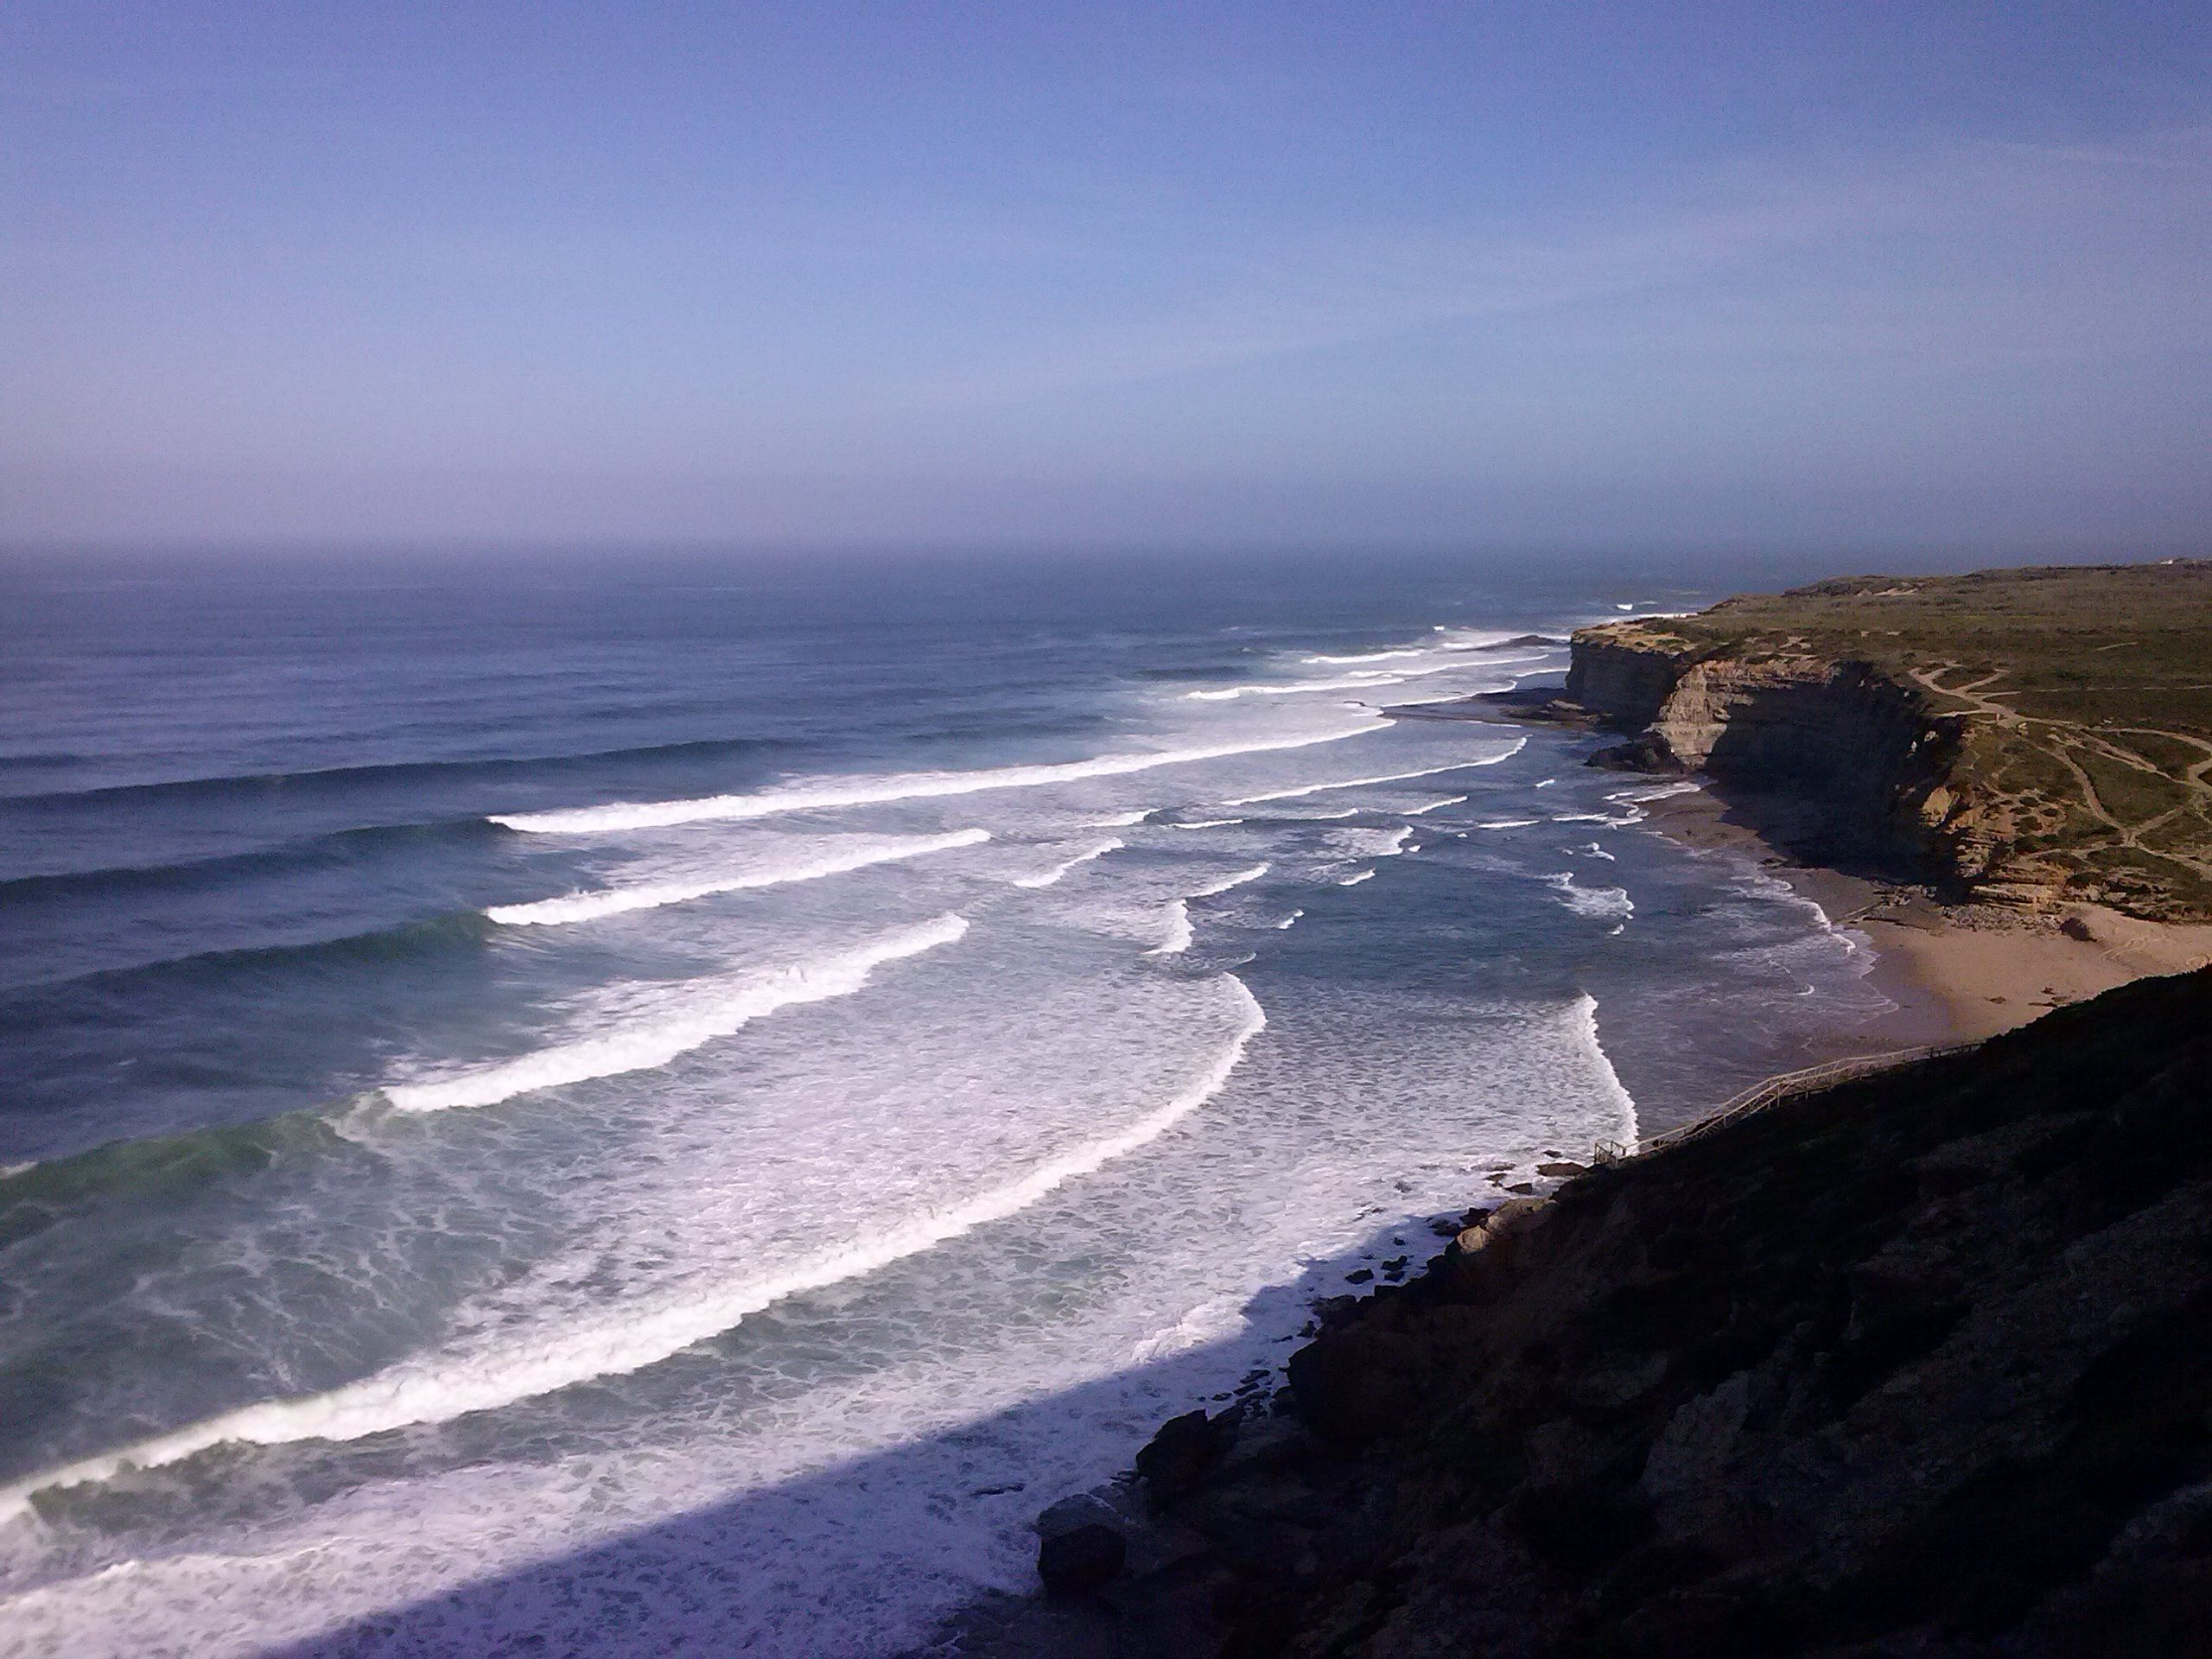 Ericeira, Portugal #waves